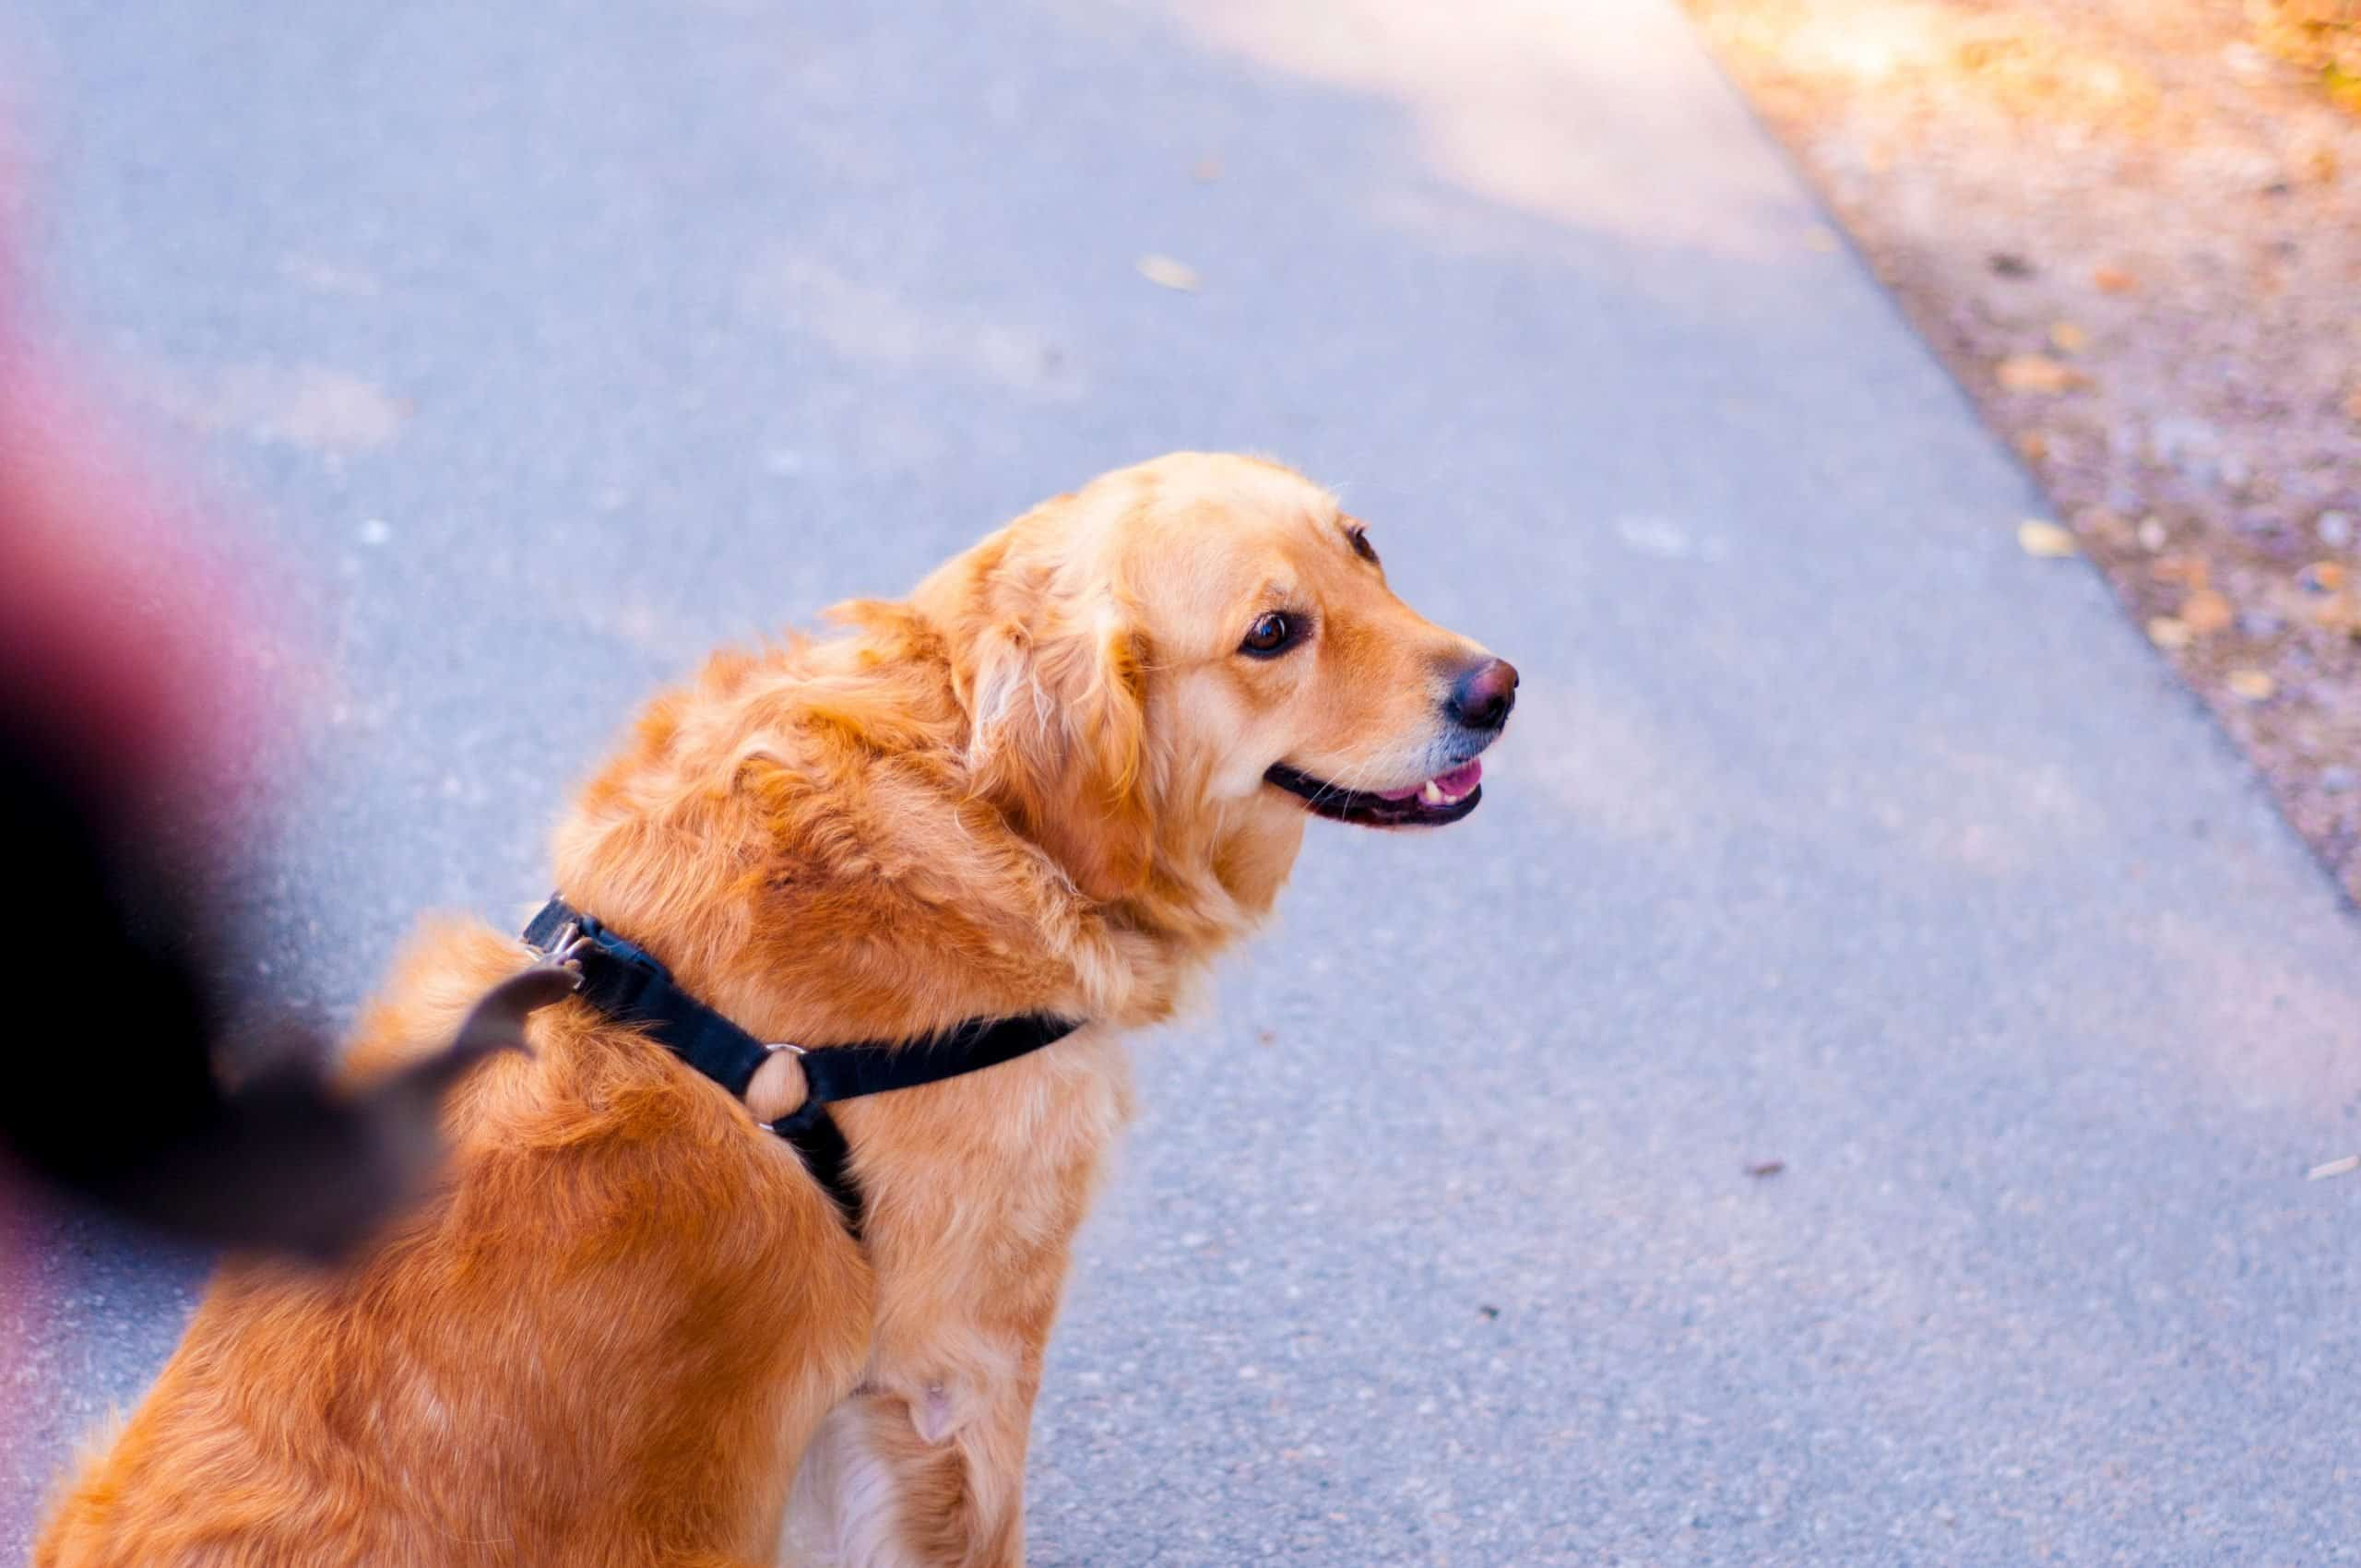 Golden Retriever is disciplined by being taught to walk nicely on a leash.